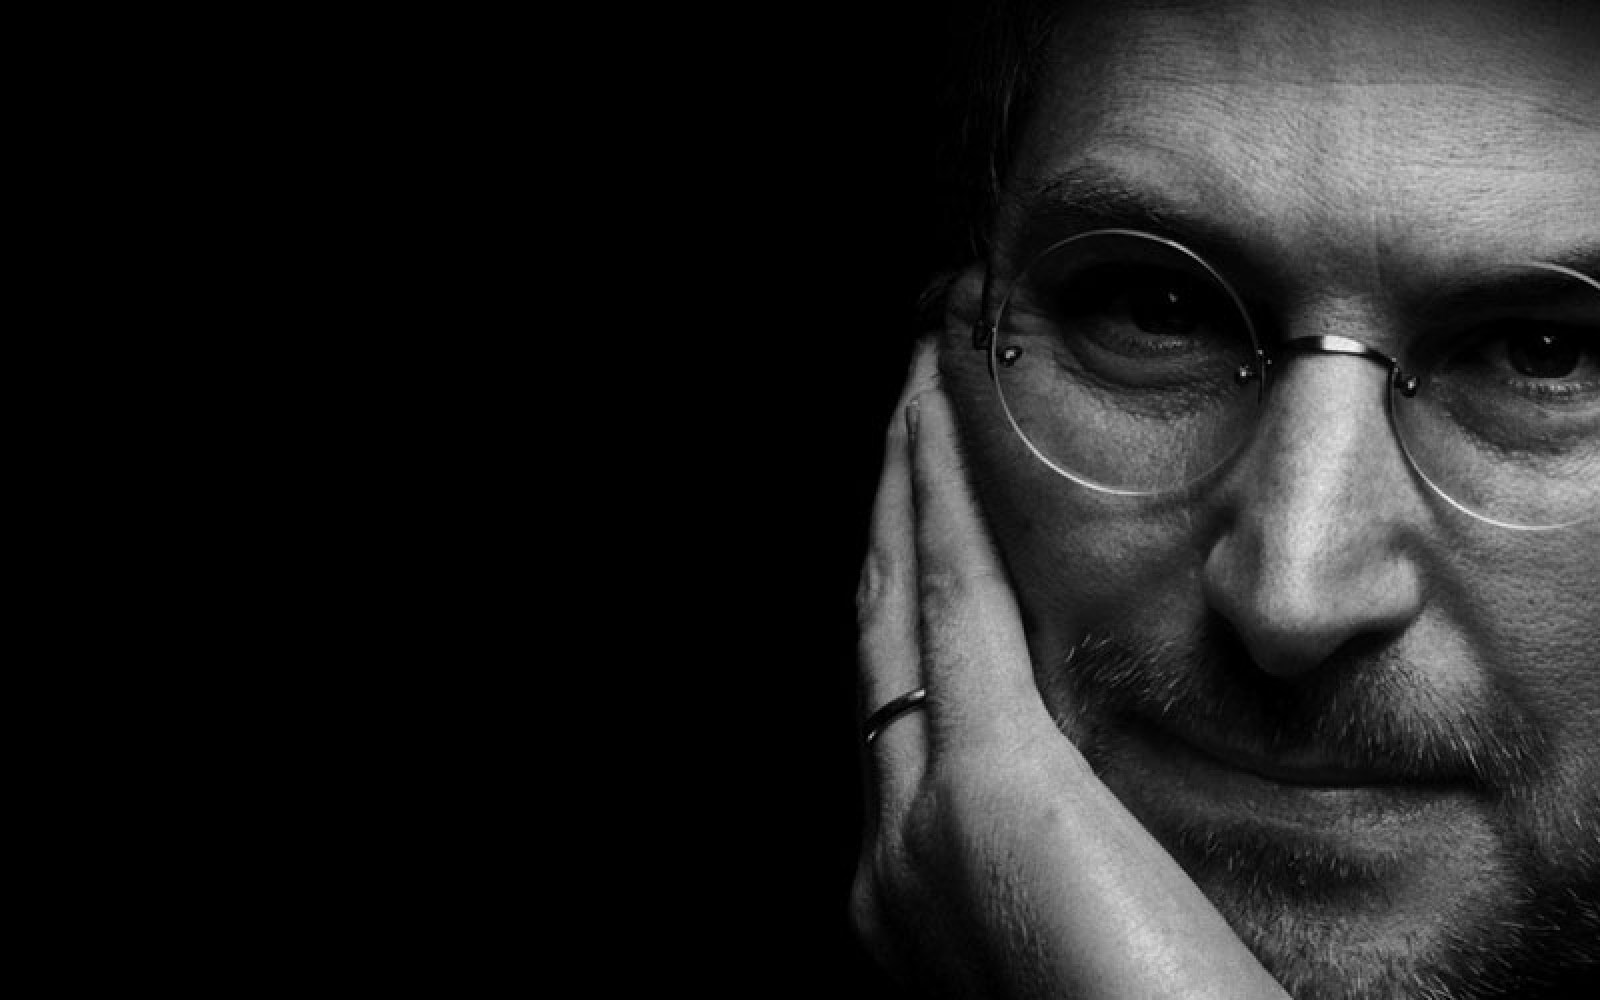 Steve Jobs effectively explains why Apple removed the headphone socket from the iPhone 7 [Video]